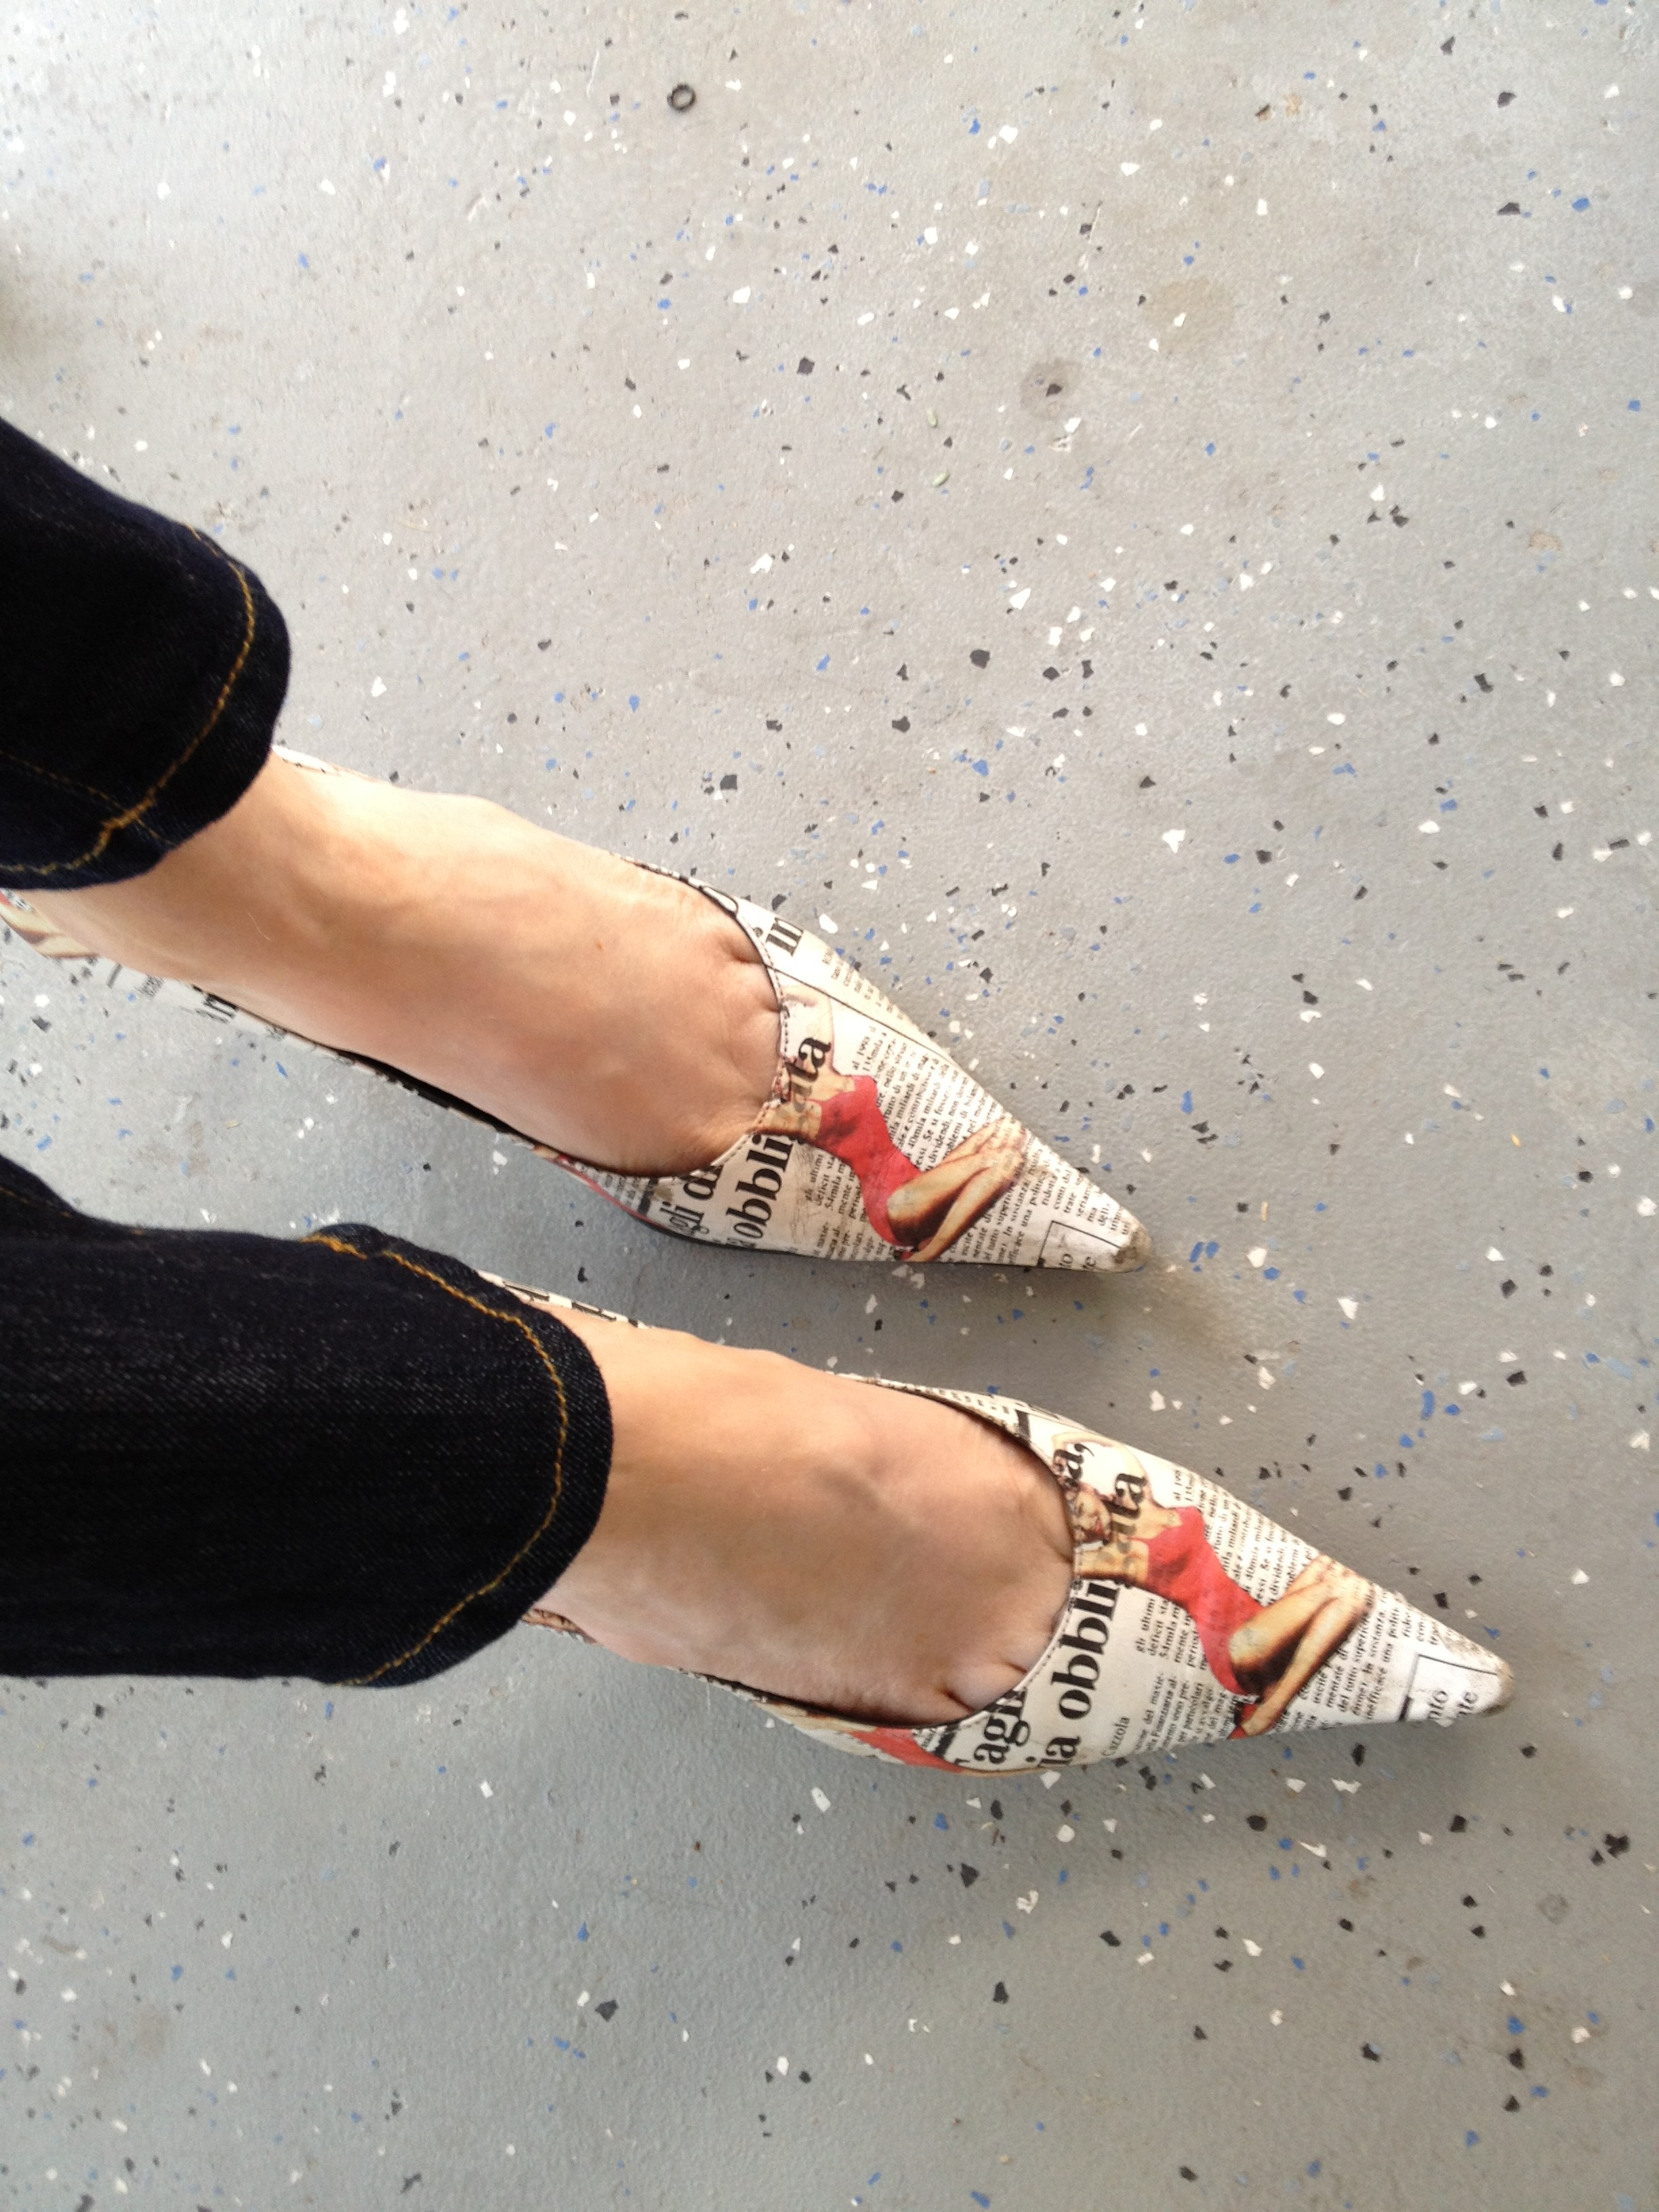 Carlos Santana newsprint pumps, currently crushing